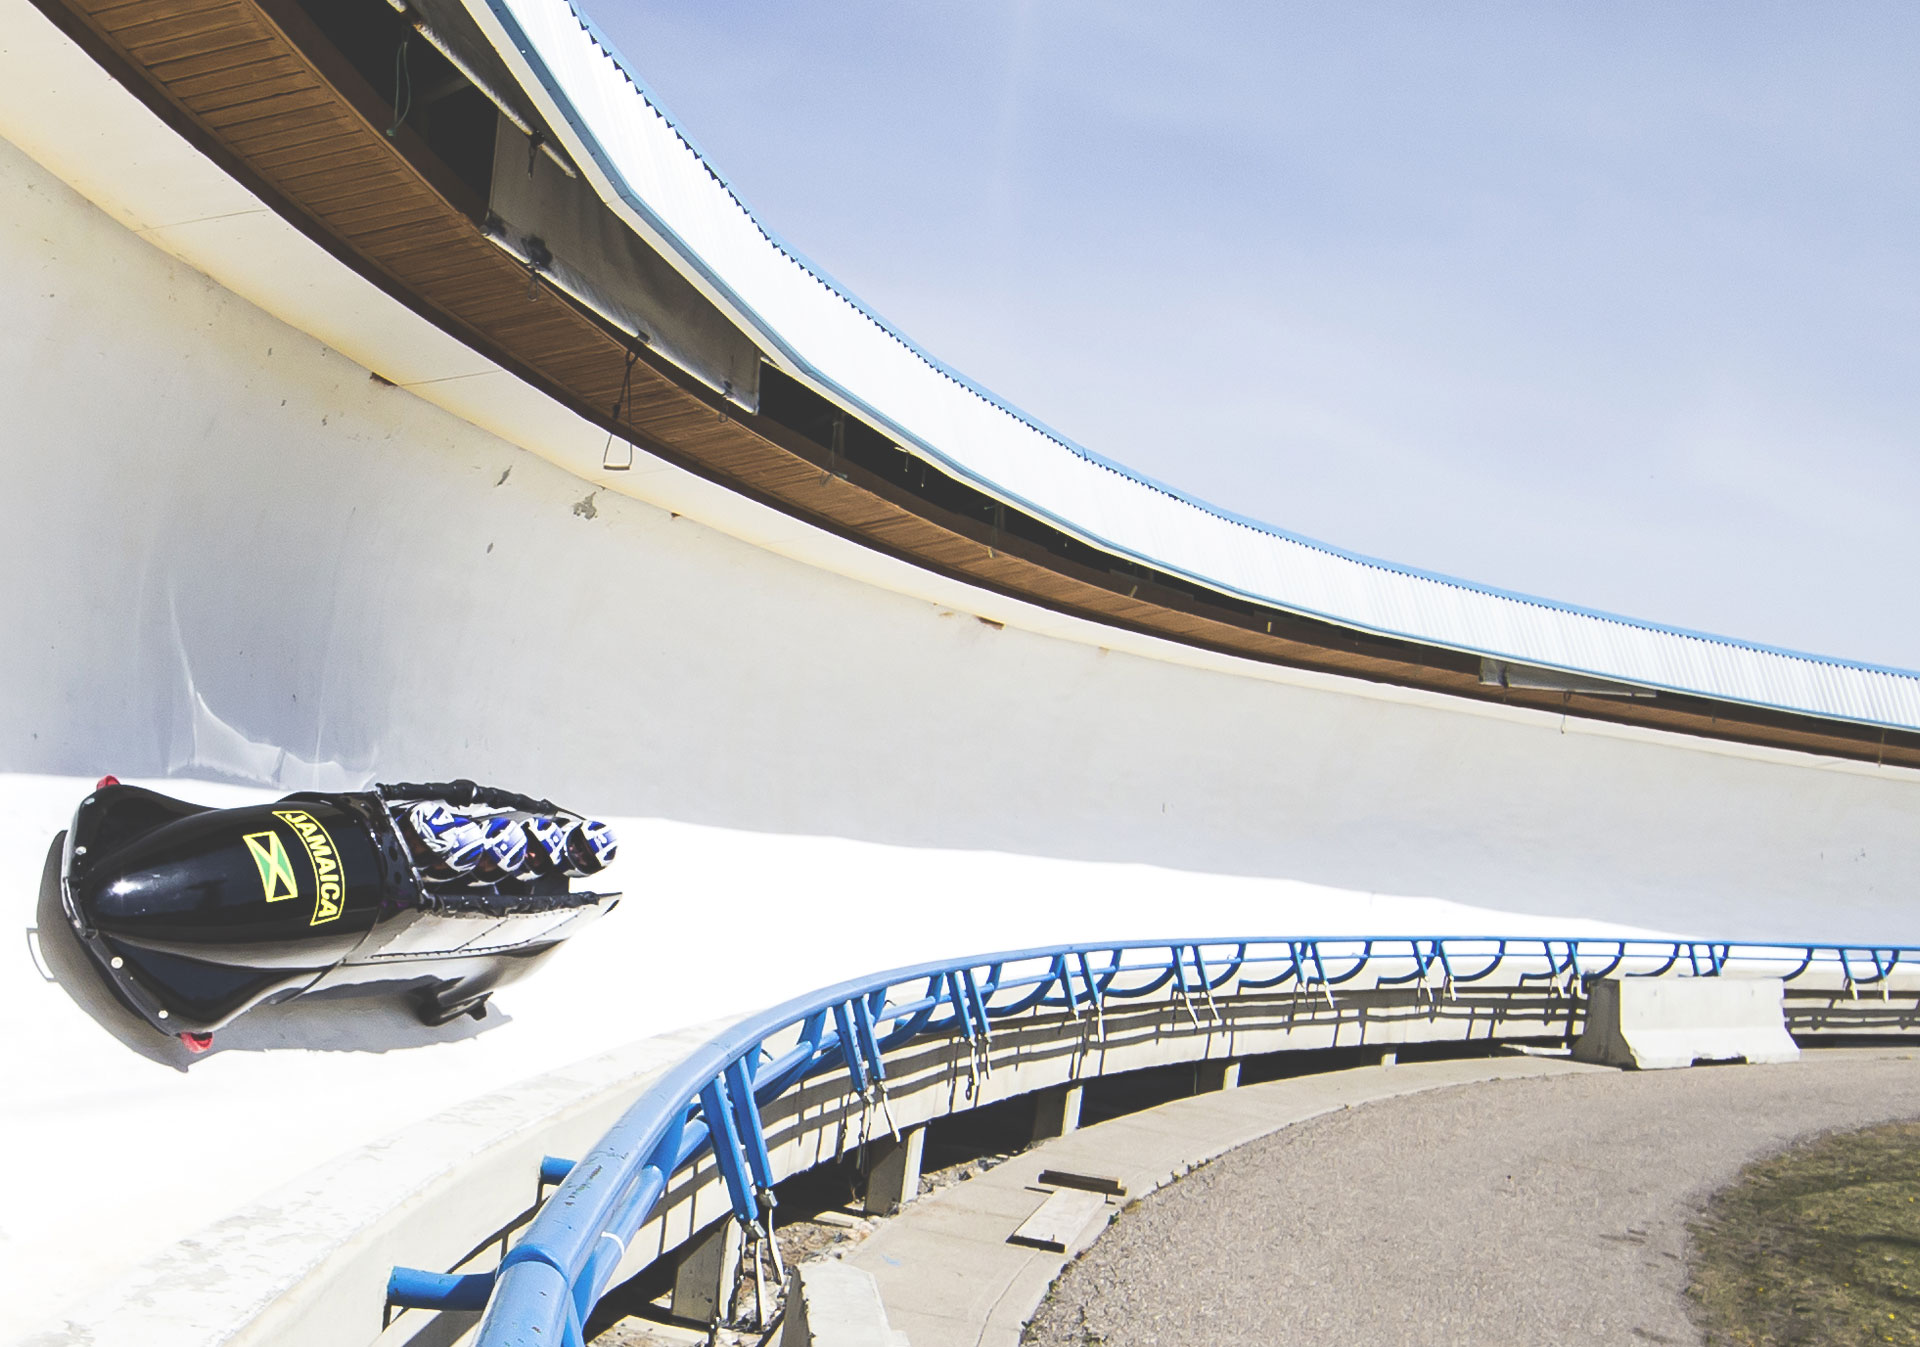 Experience the rush of the summer bobsleigh at WinSport.